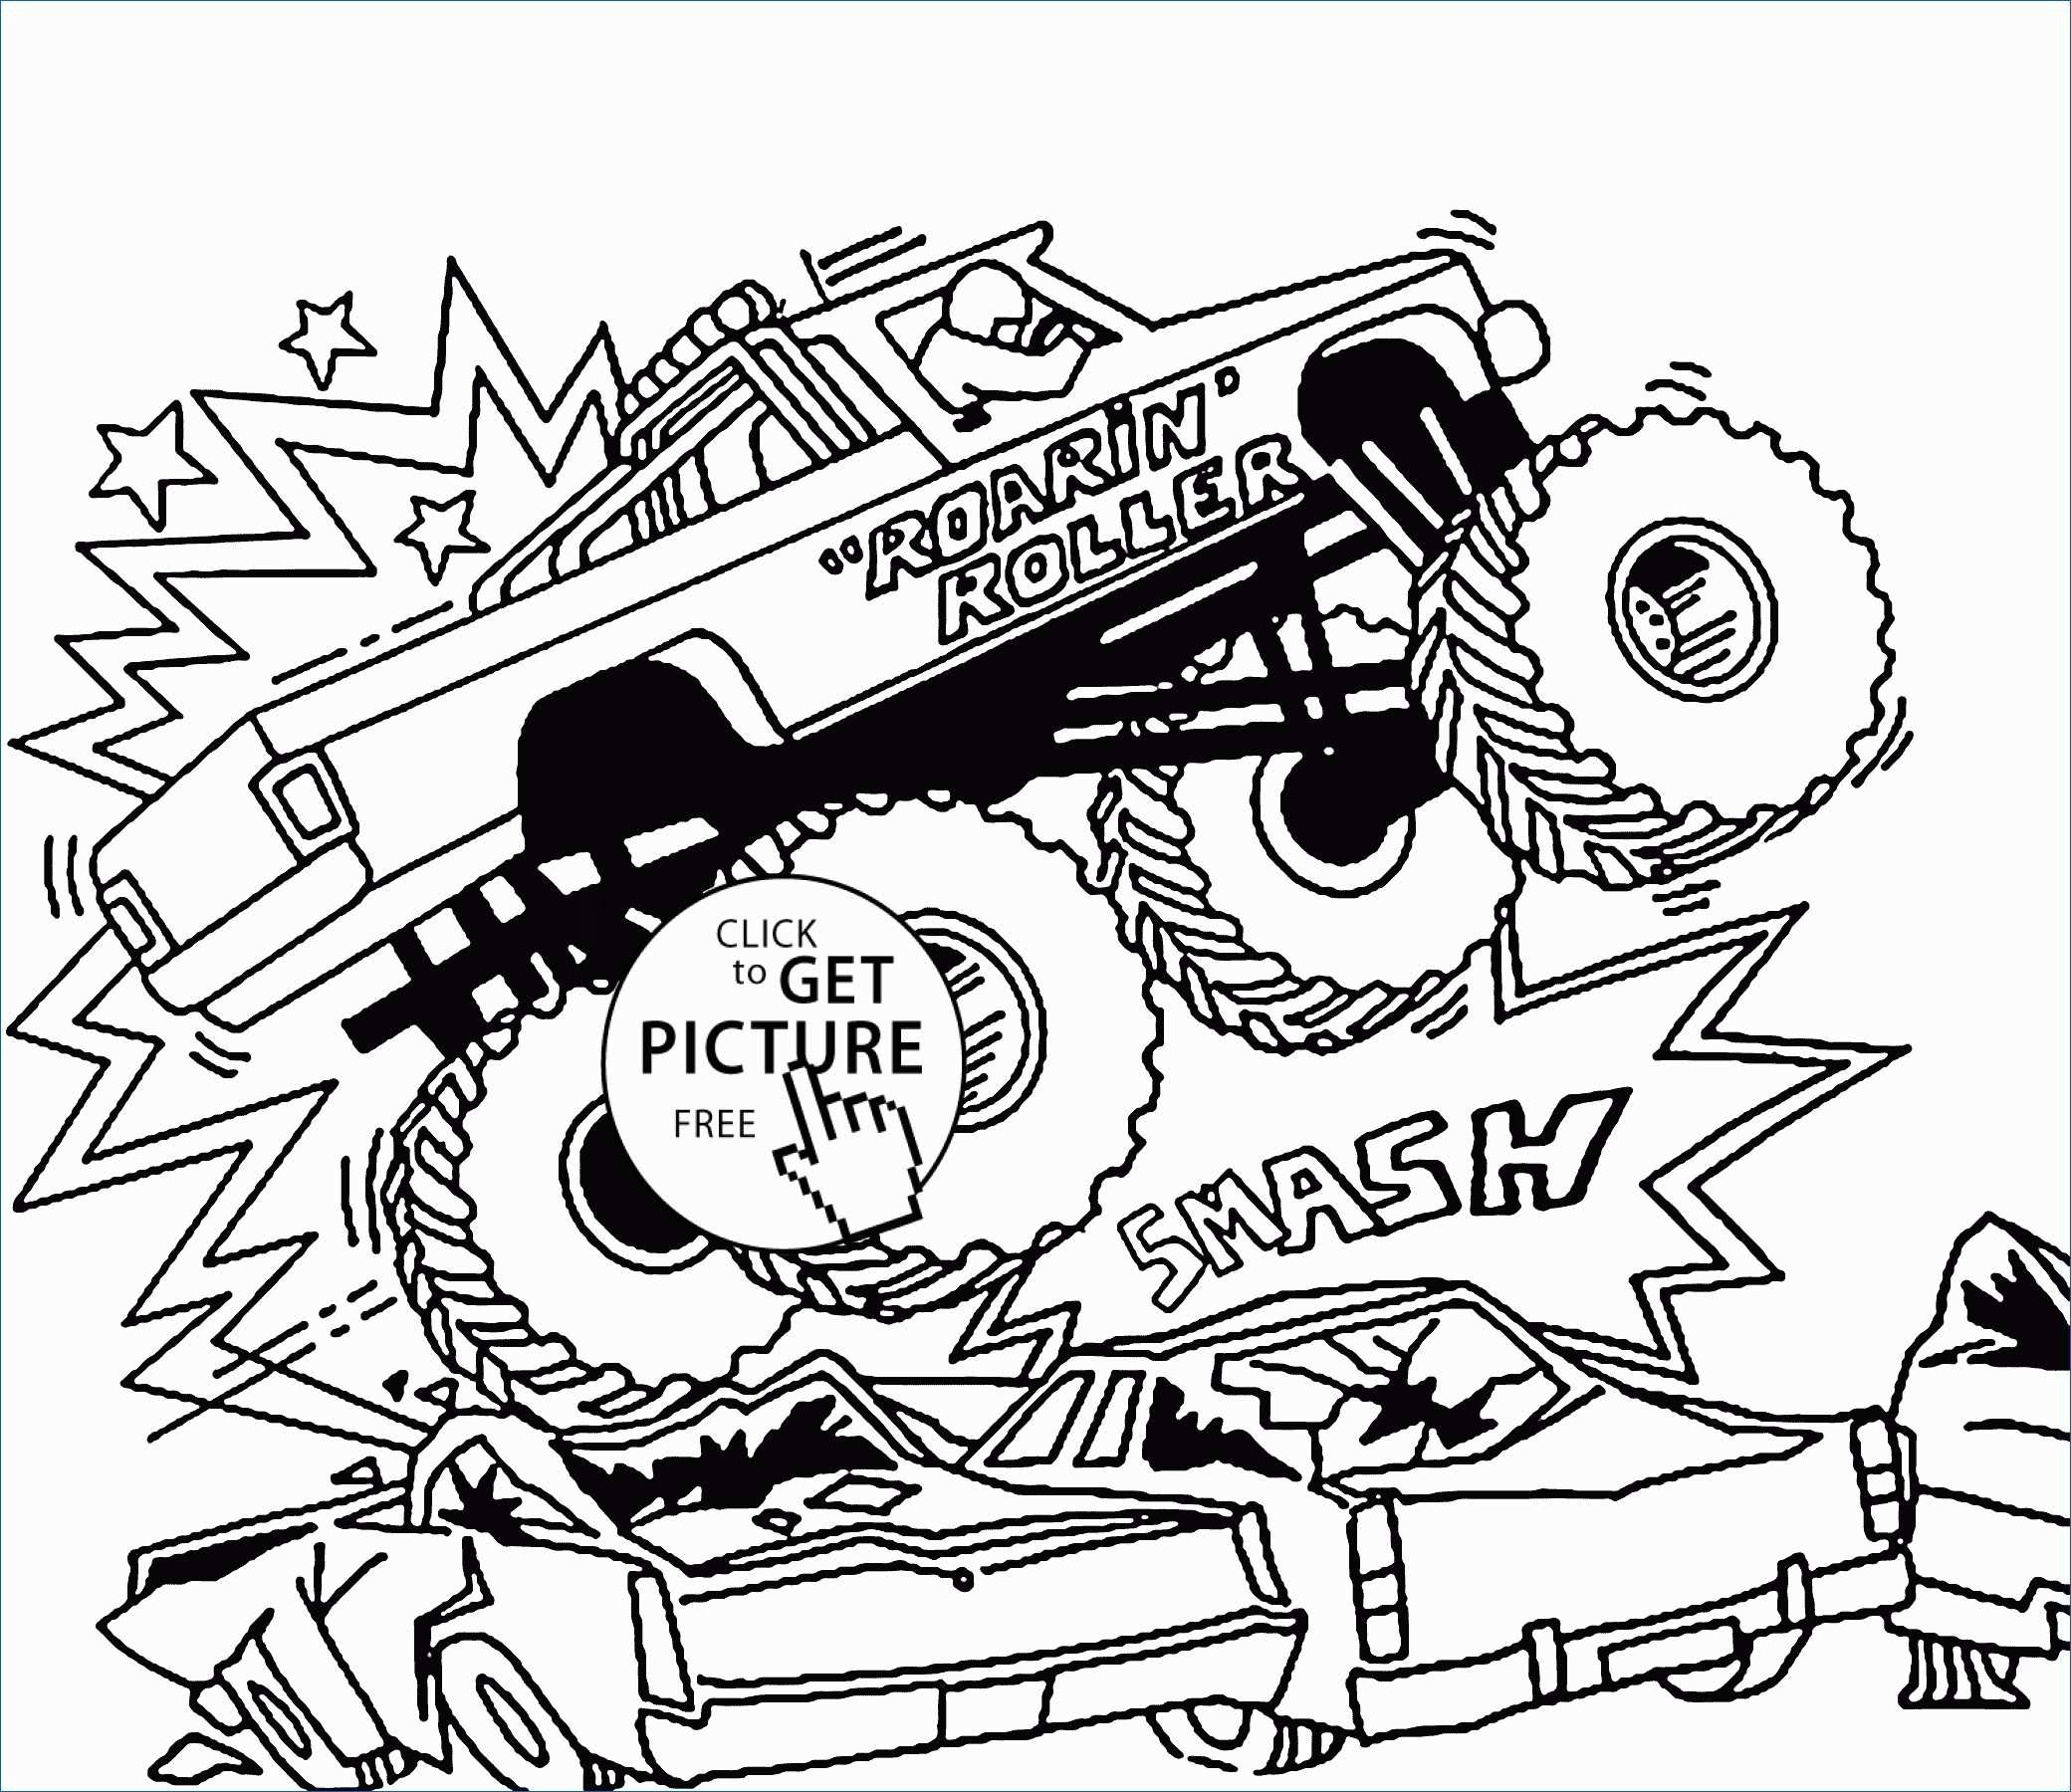 Coloring Pages Monster Trucks Free Monster Truck Coloring Pages To Print New Free Monster Truck Birijus Com